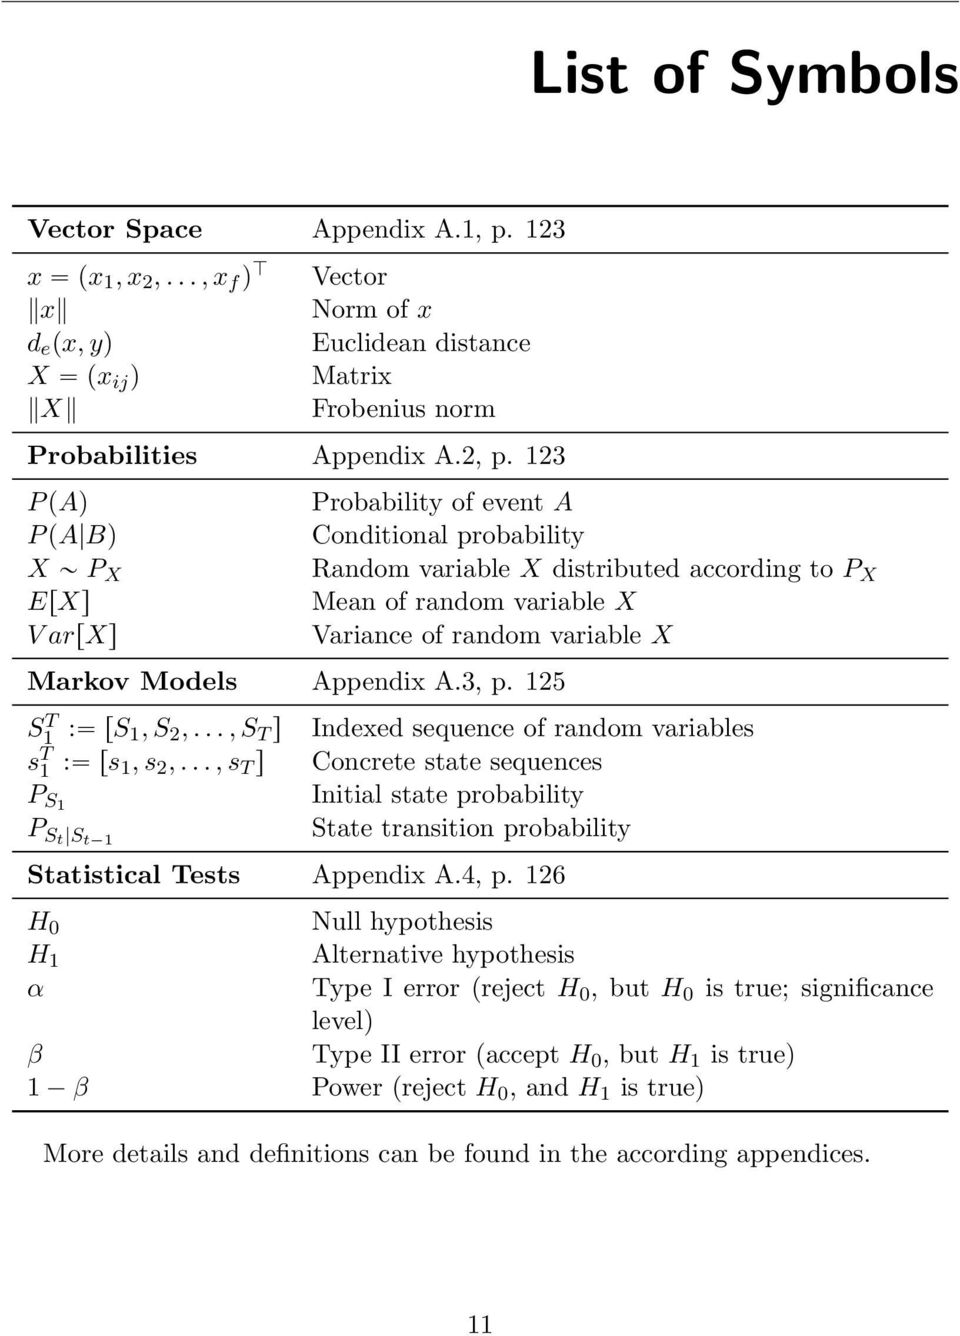 Models Appendix A.3, p. 125 S1 T : rs 1, S 2,..., S T s Indexed sequence of random variables s T 1 : rs 1, s 2,.